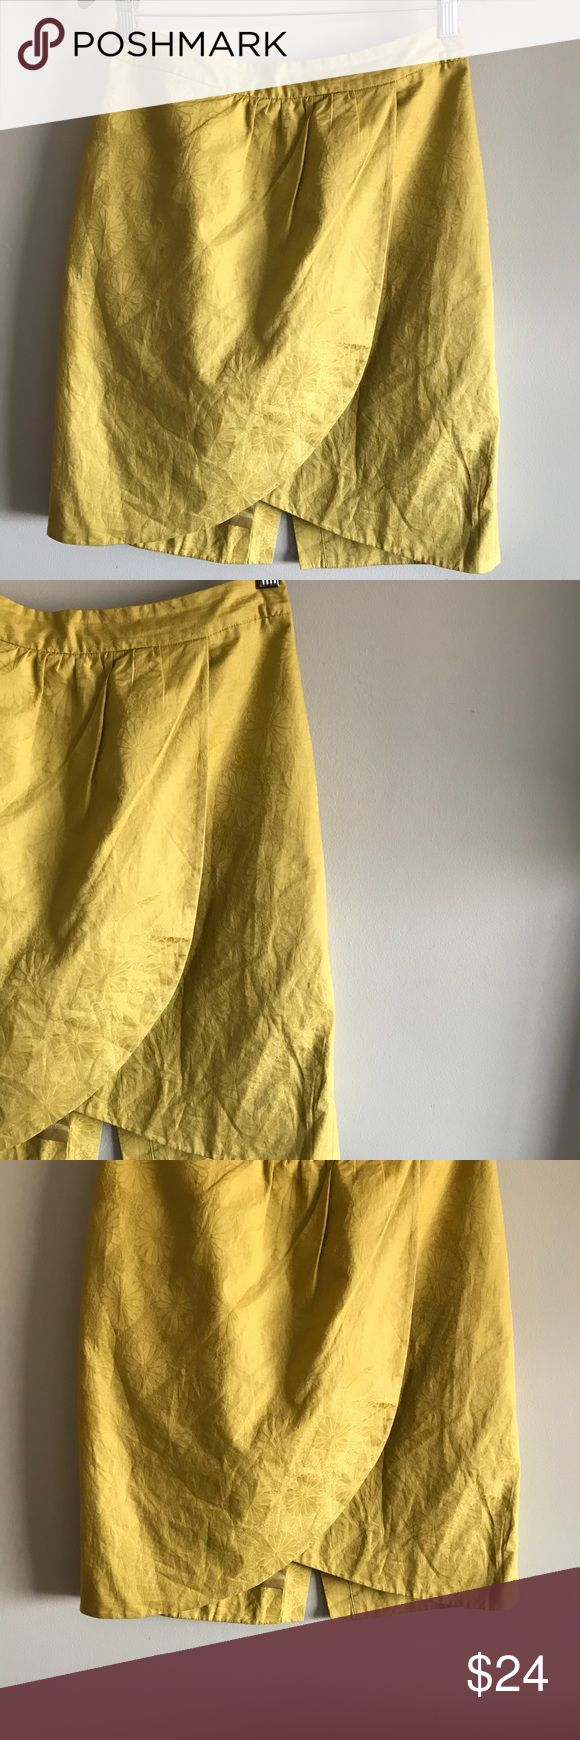 Anthropologie yellow tulip skirt size 4 Cute Anthropologie skirt from brand Edme & Esyllte in a tulip style. Bundle with other items from my closet for the best deal! Anthropologie Skirts Midi